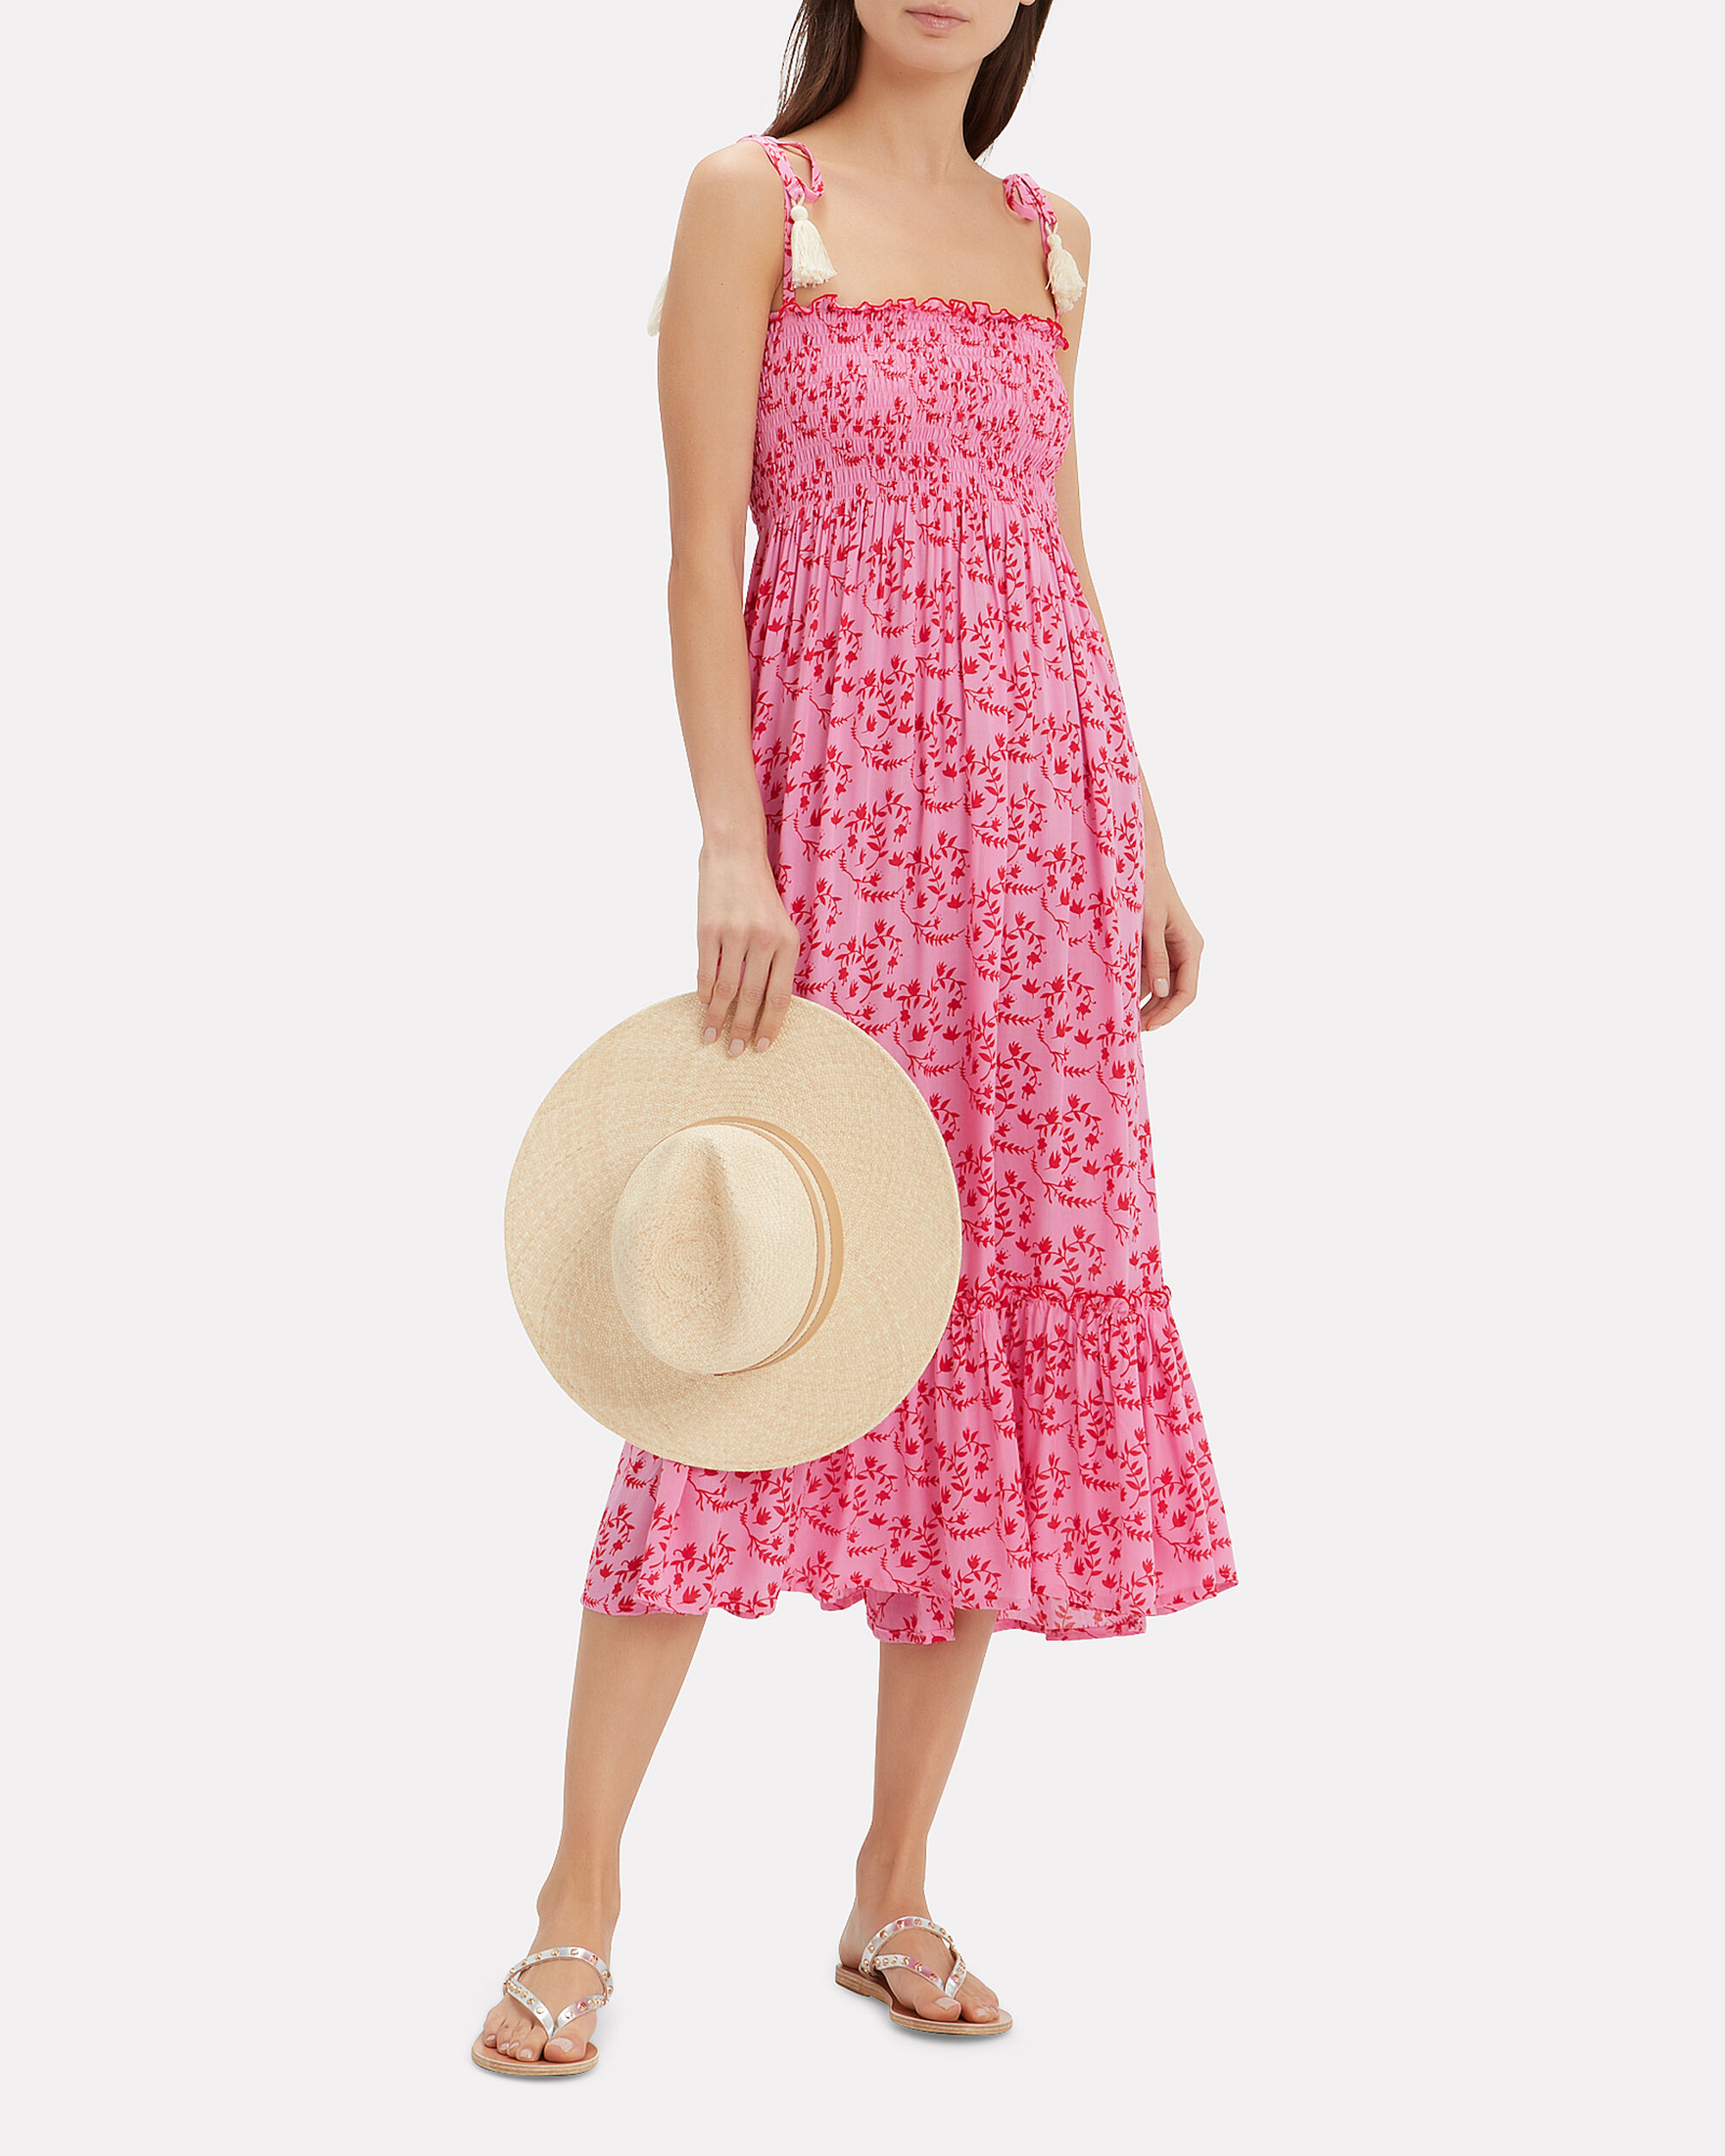 Piper Floral Dress, PINK, hi-res